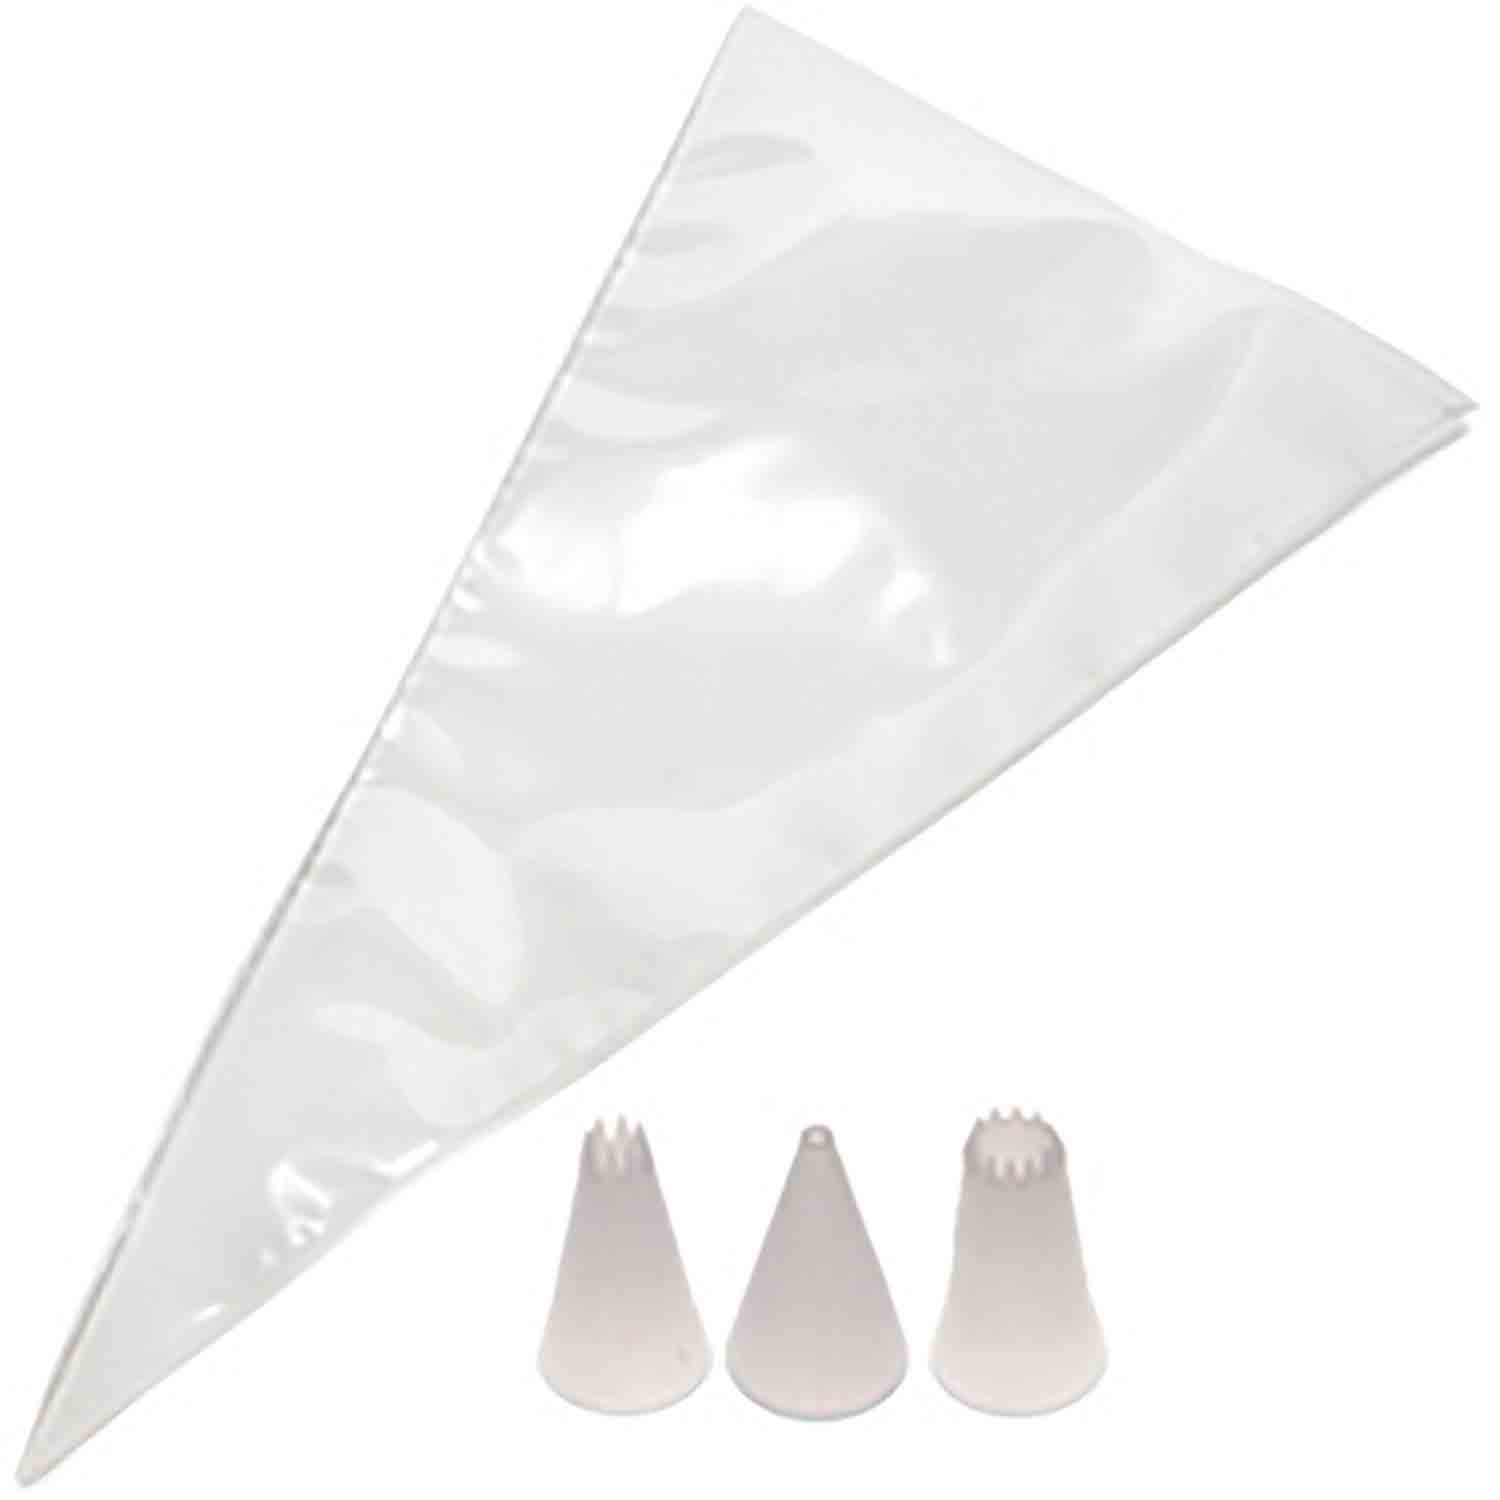 #331 Plastic Tip & Disposable Decorating Bags Set